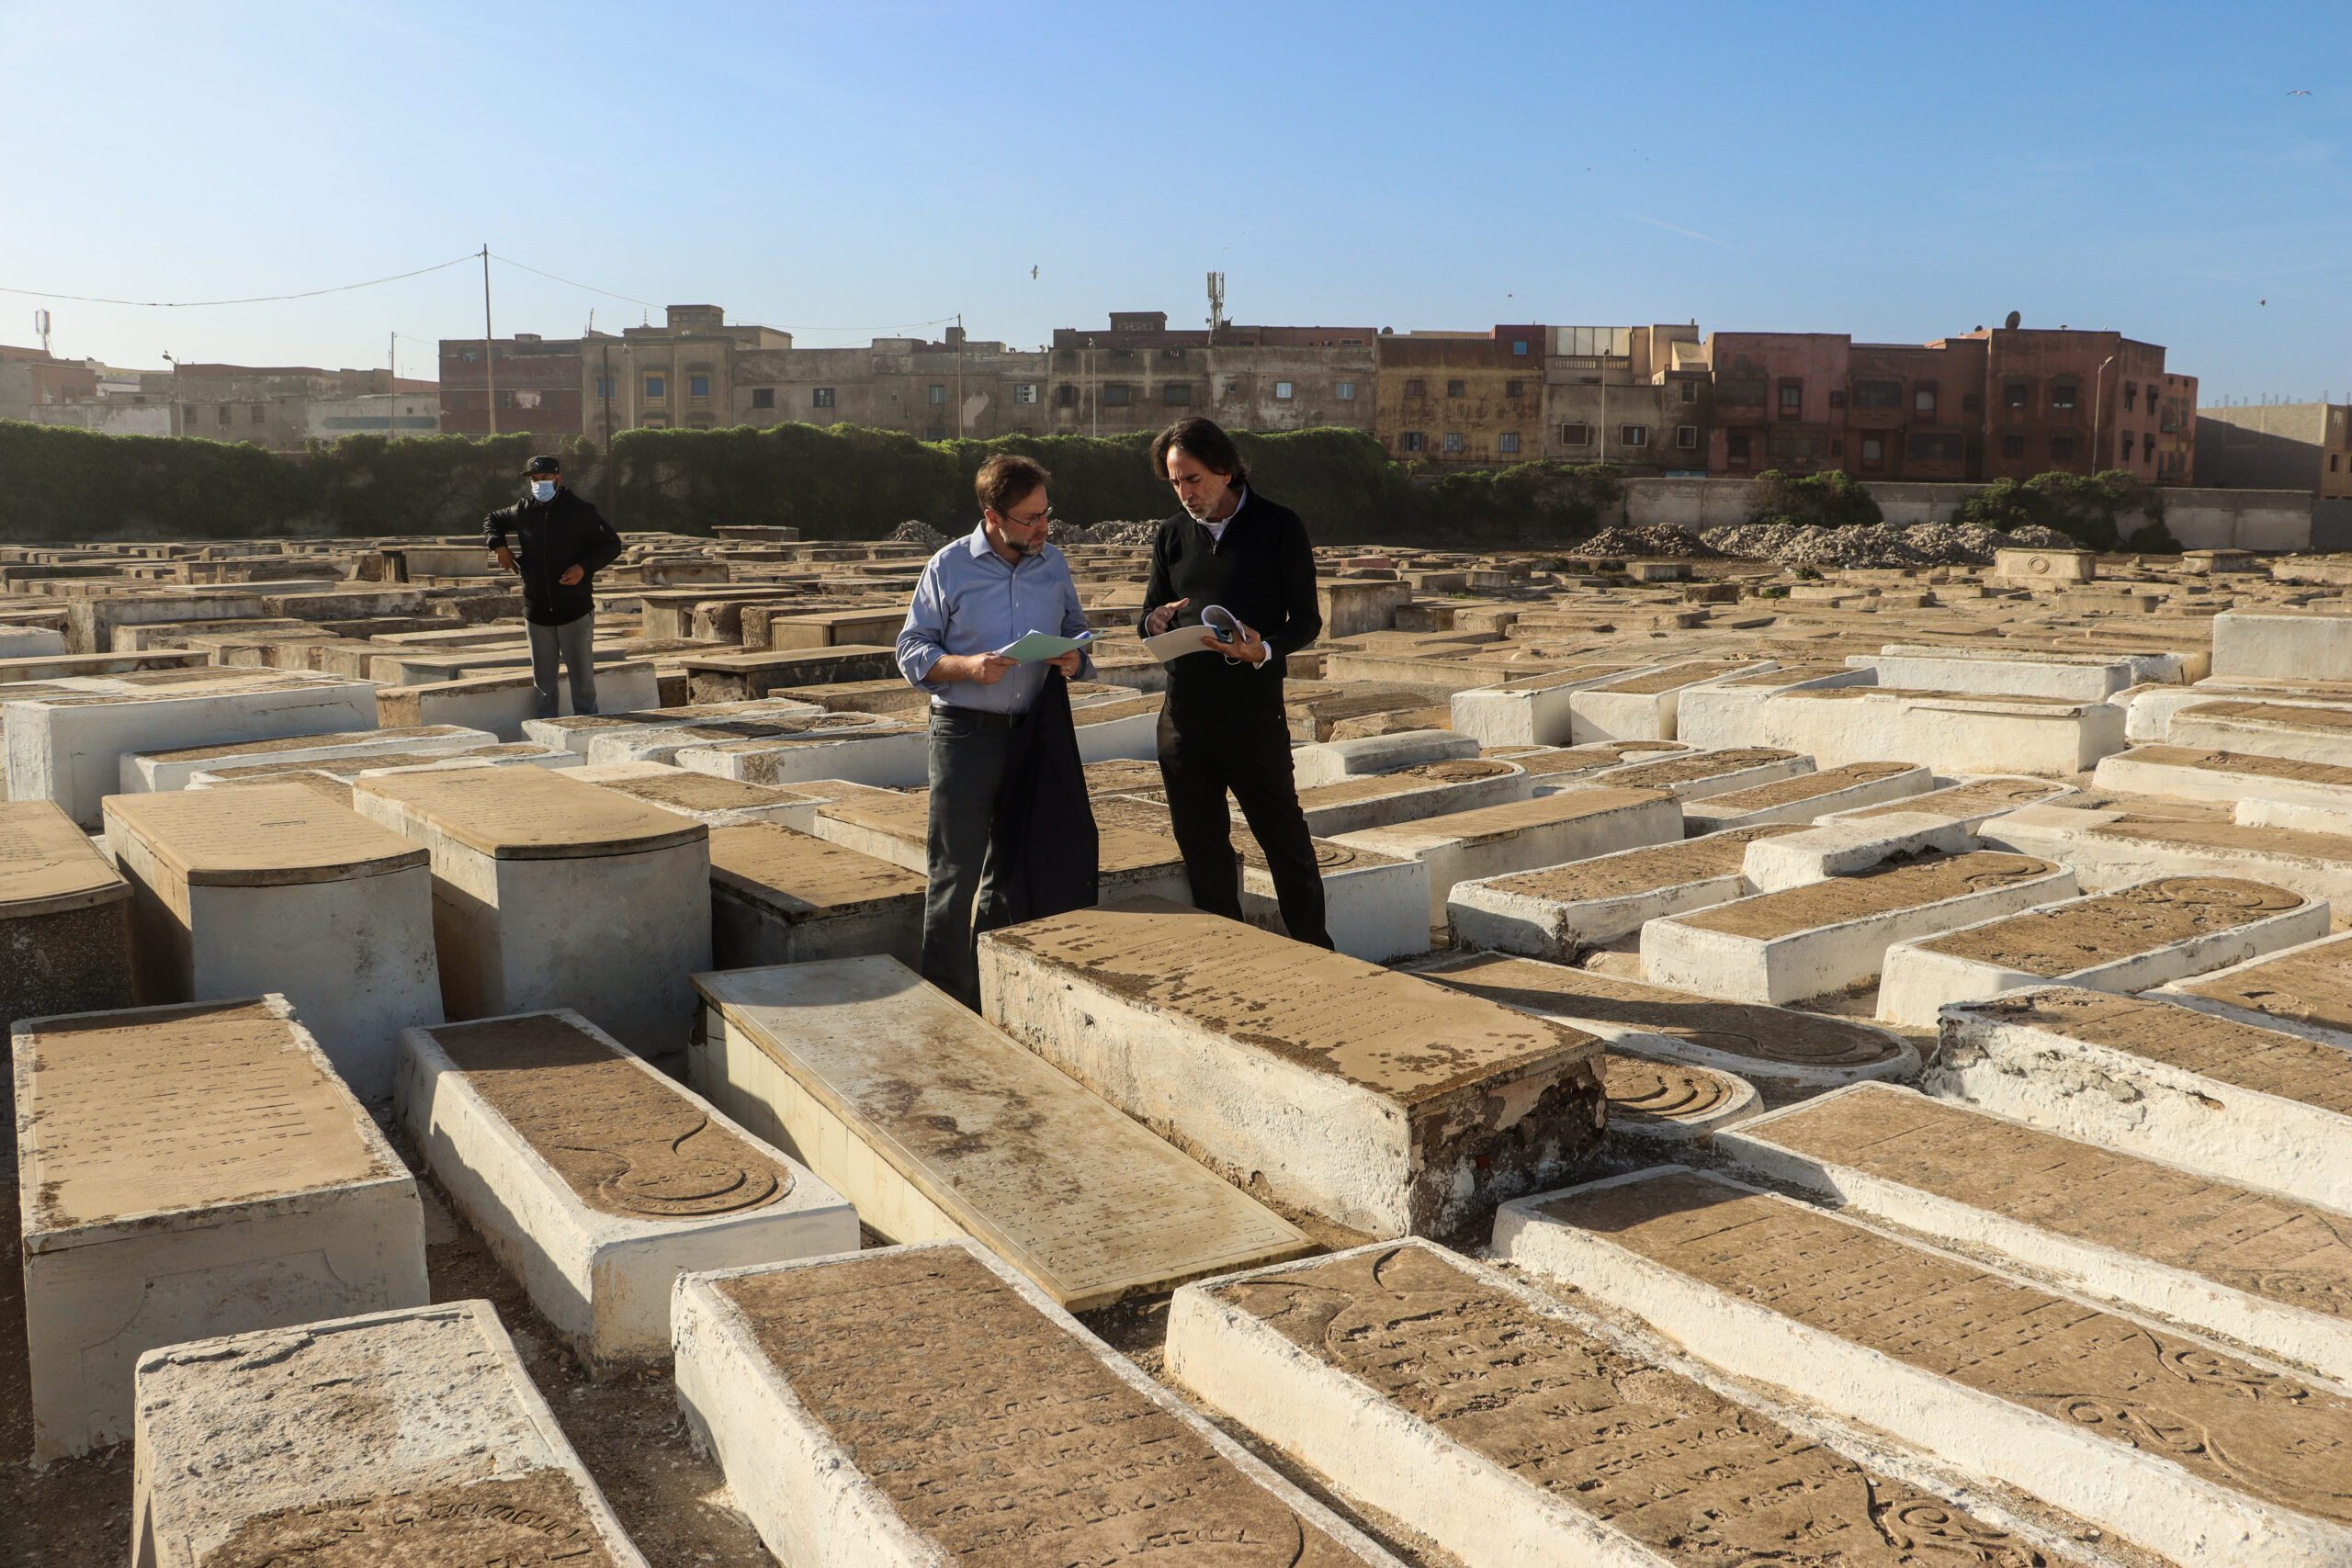 Visiting Essaouira's Past and Present with U.S. Chargé d'Affaires David Greene